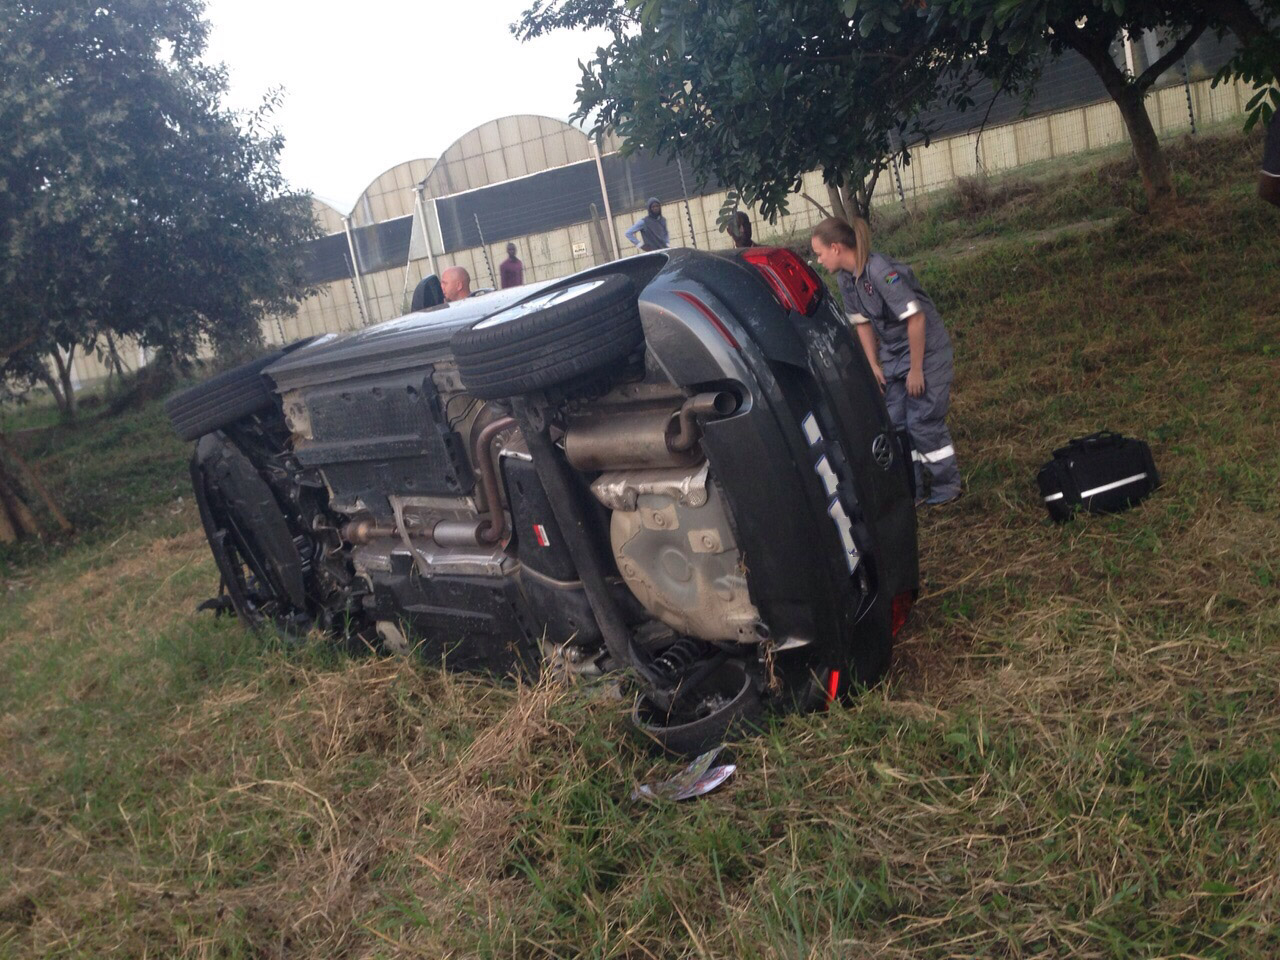 KZN Umhlali rear-end collision leaves woman injured